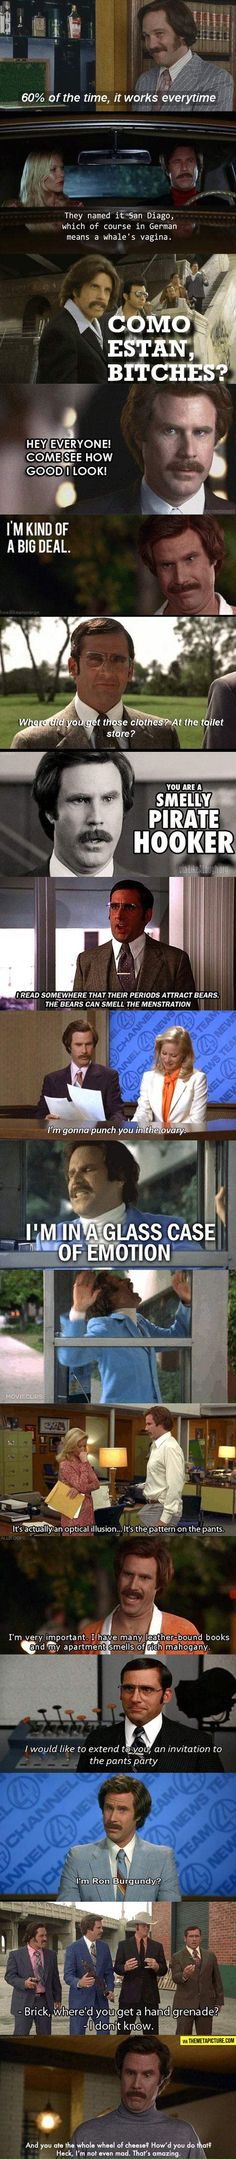 Best of Anchorman. Can't wait for part 2!